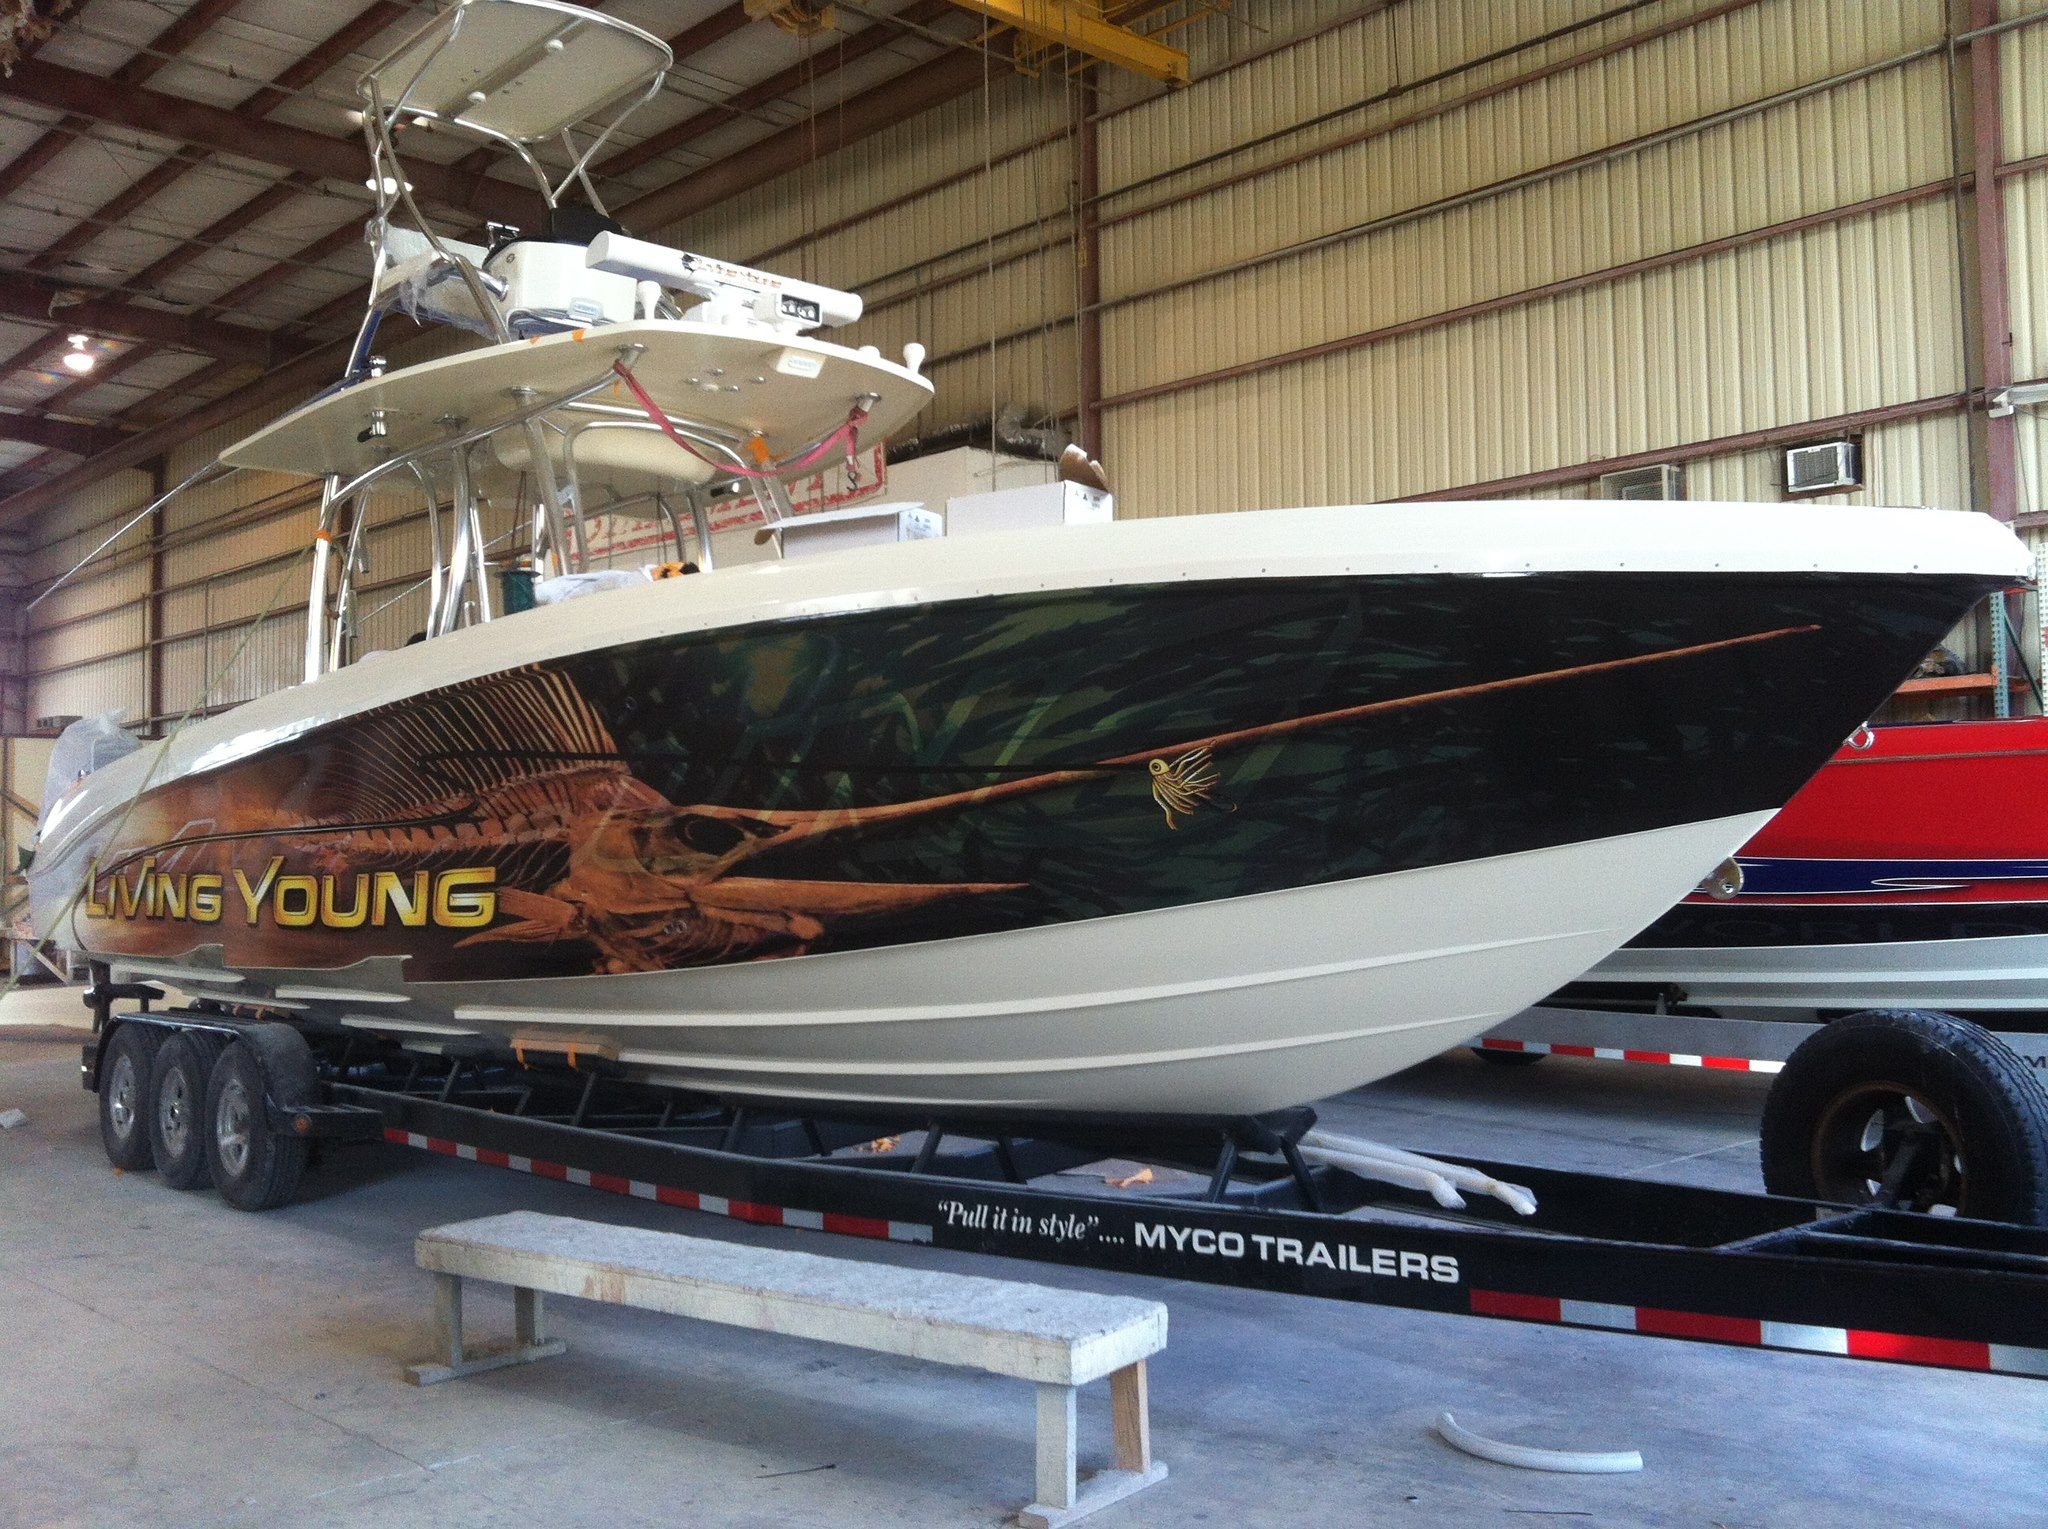 Boat Wrap Graphics Vinyl Pinterest Boat Wraps Boating And - Sporting boat decalsbest boat wraps custom vinyl images on pinterest boat wraps